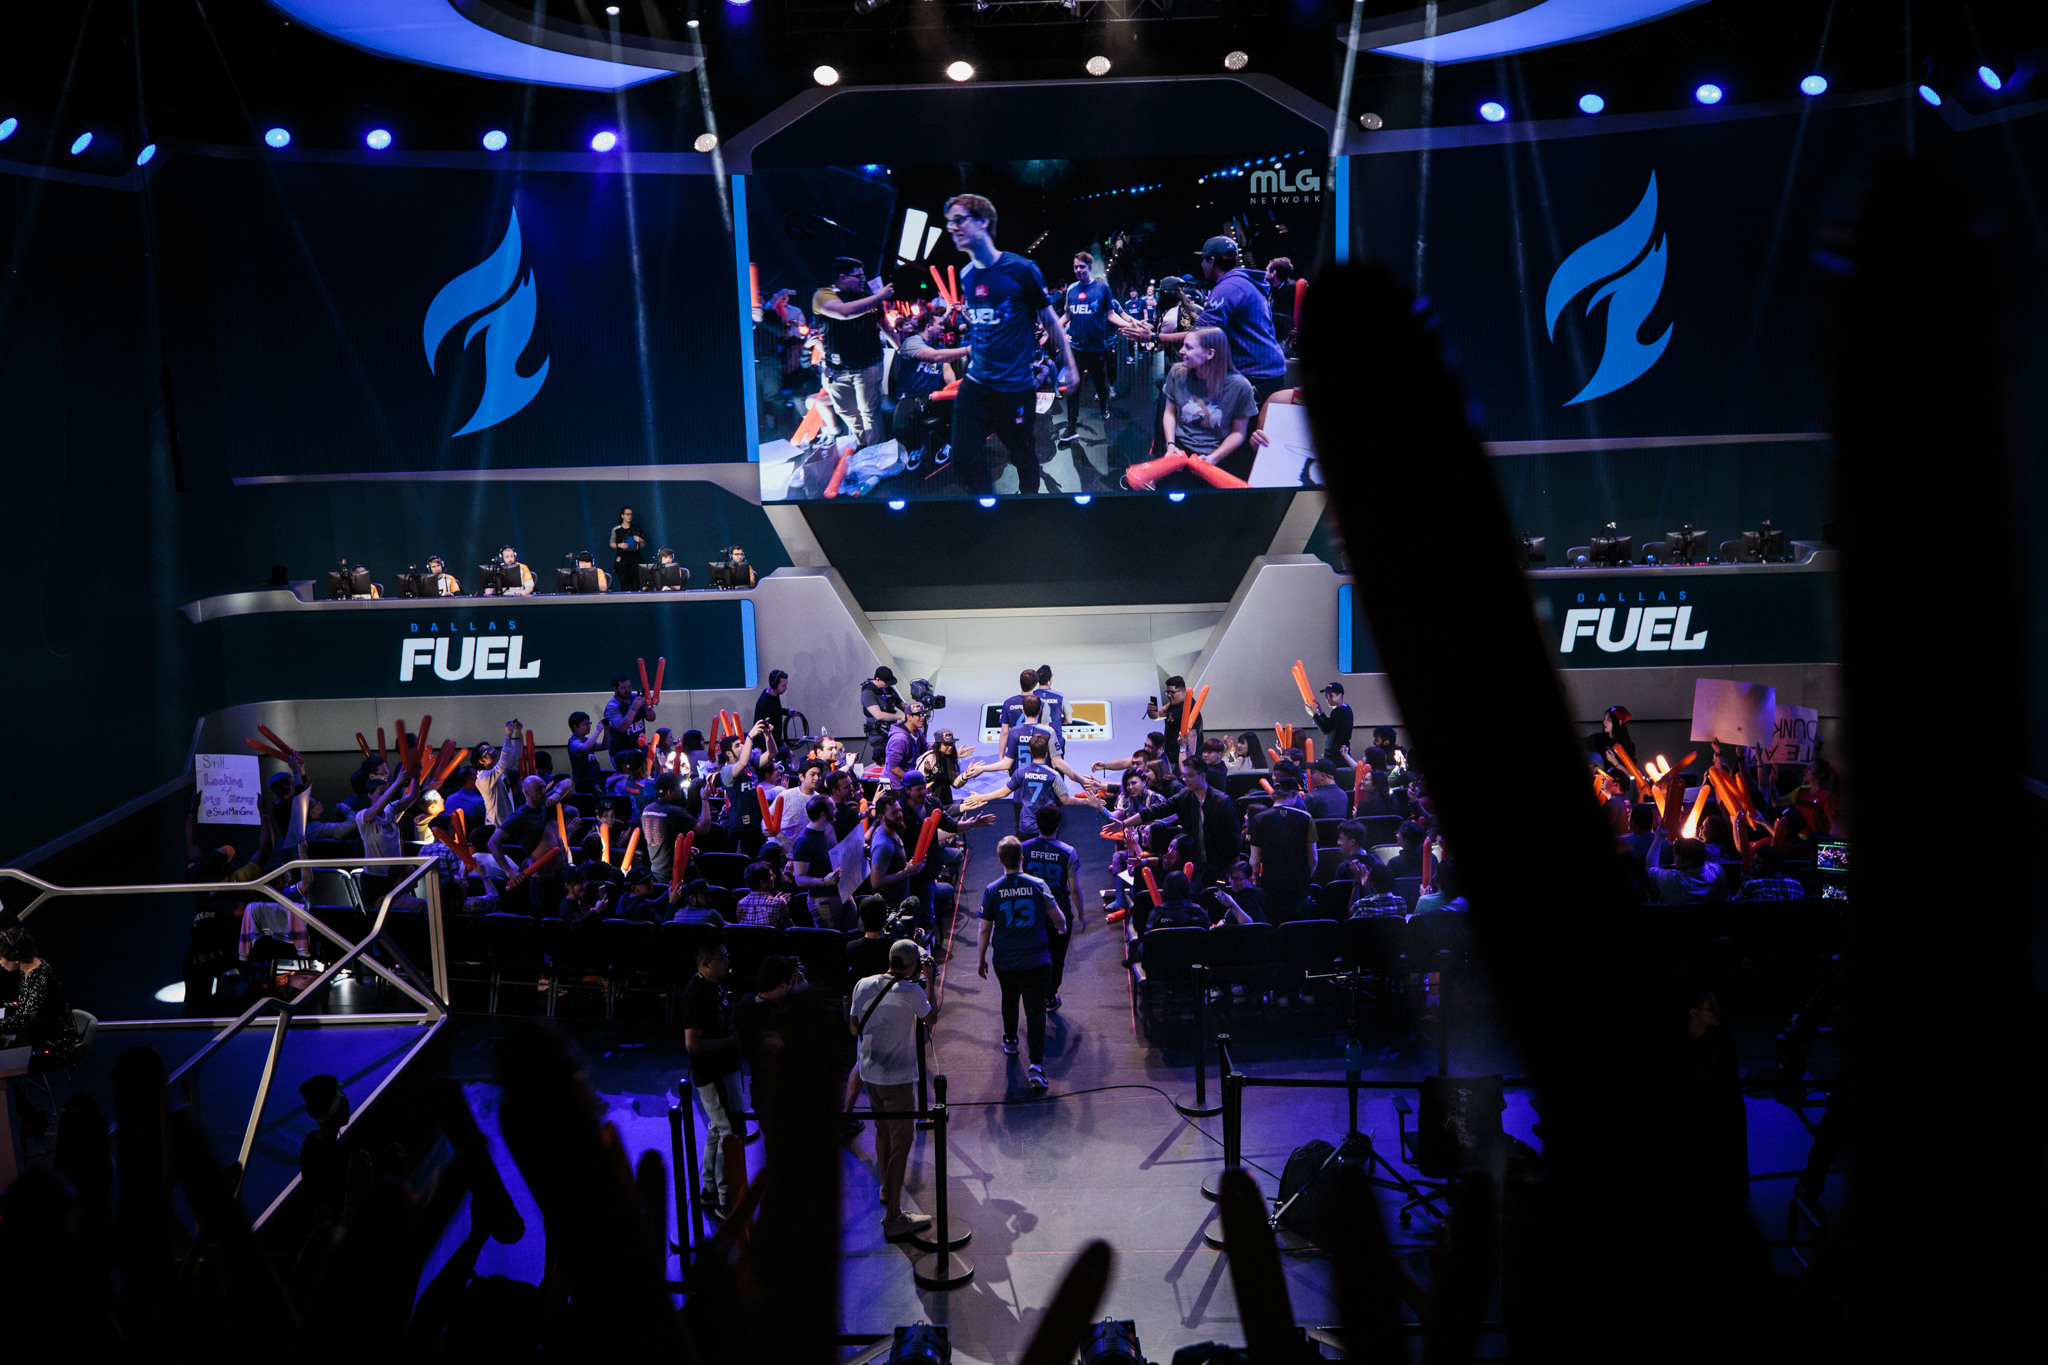 Overwatch League Power Rankings, Stage 1 - Week 4 - over gg